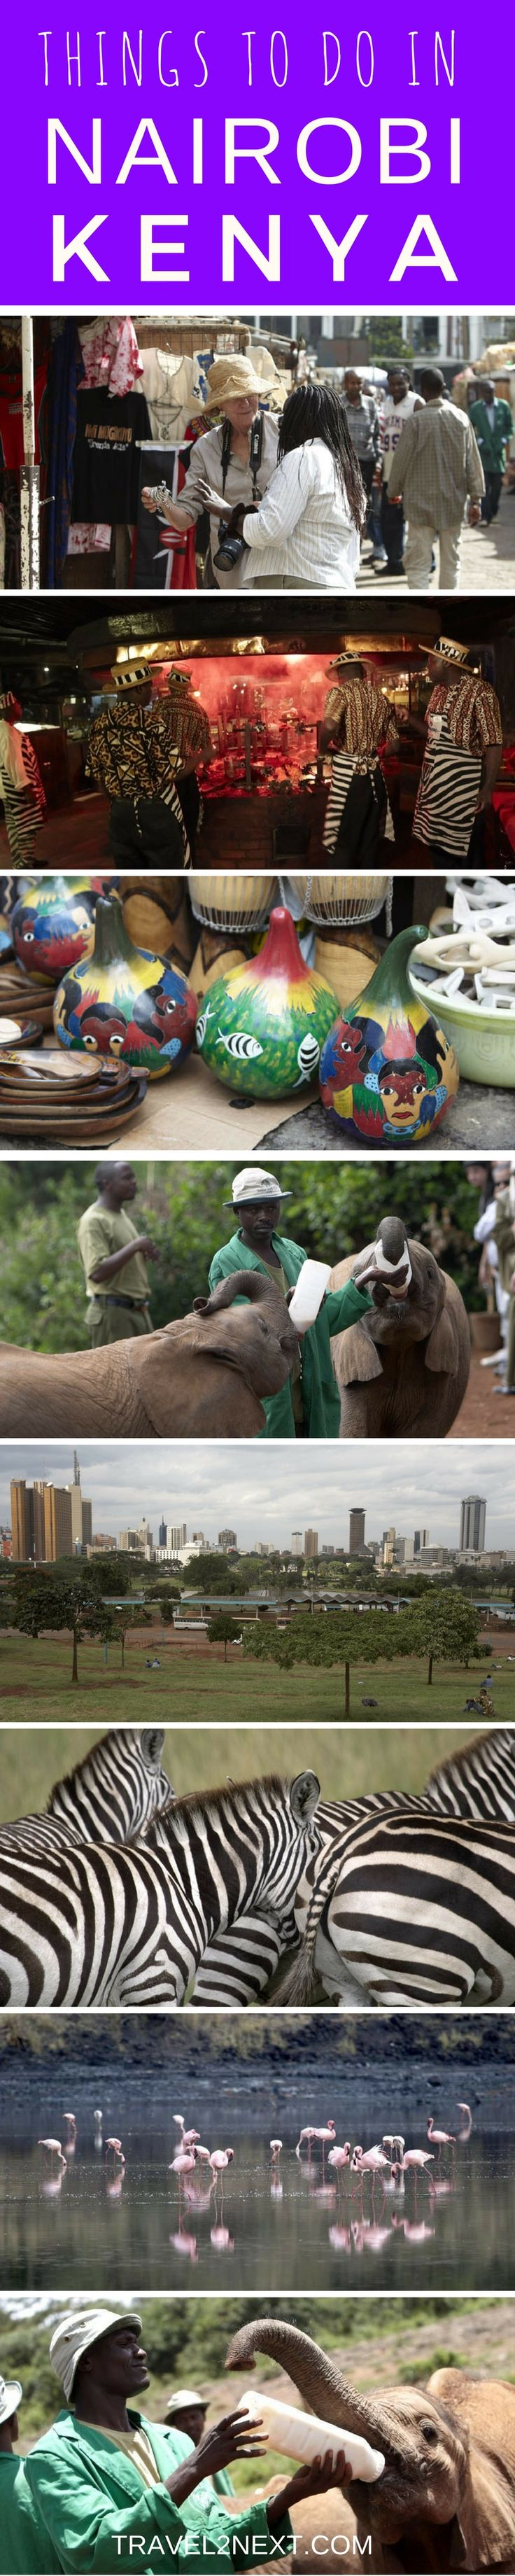 Things to do in Nairobi. Baby elephants, friendly giraffes and other wildlife are the focus of attention in Kenya's capital.